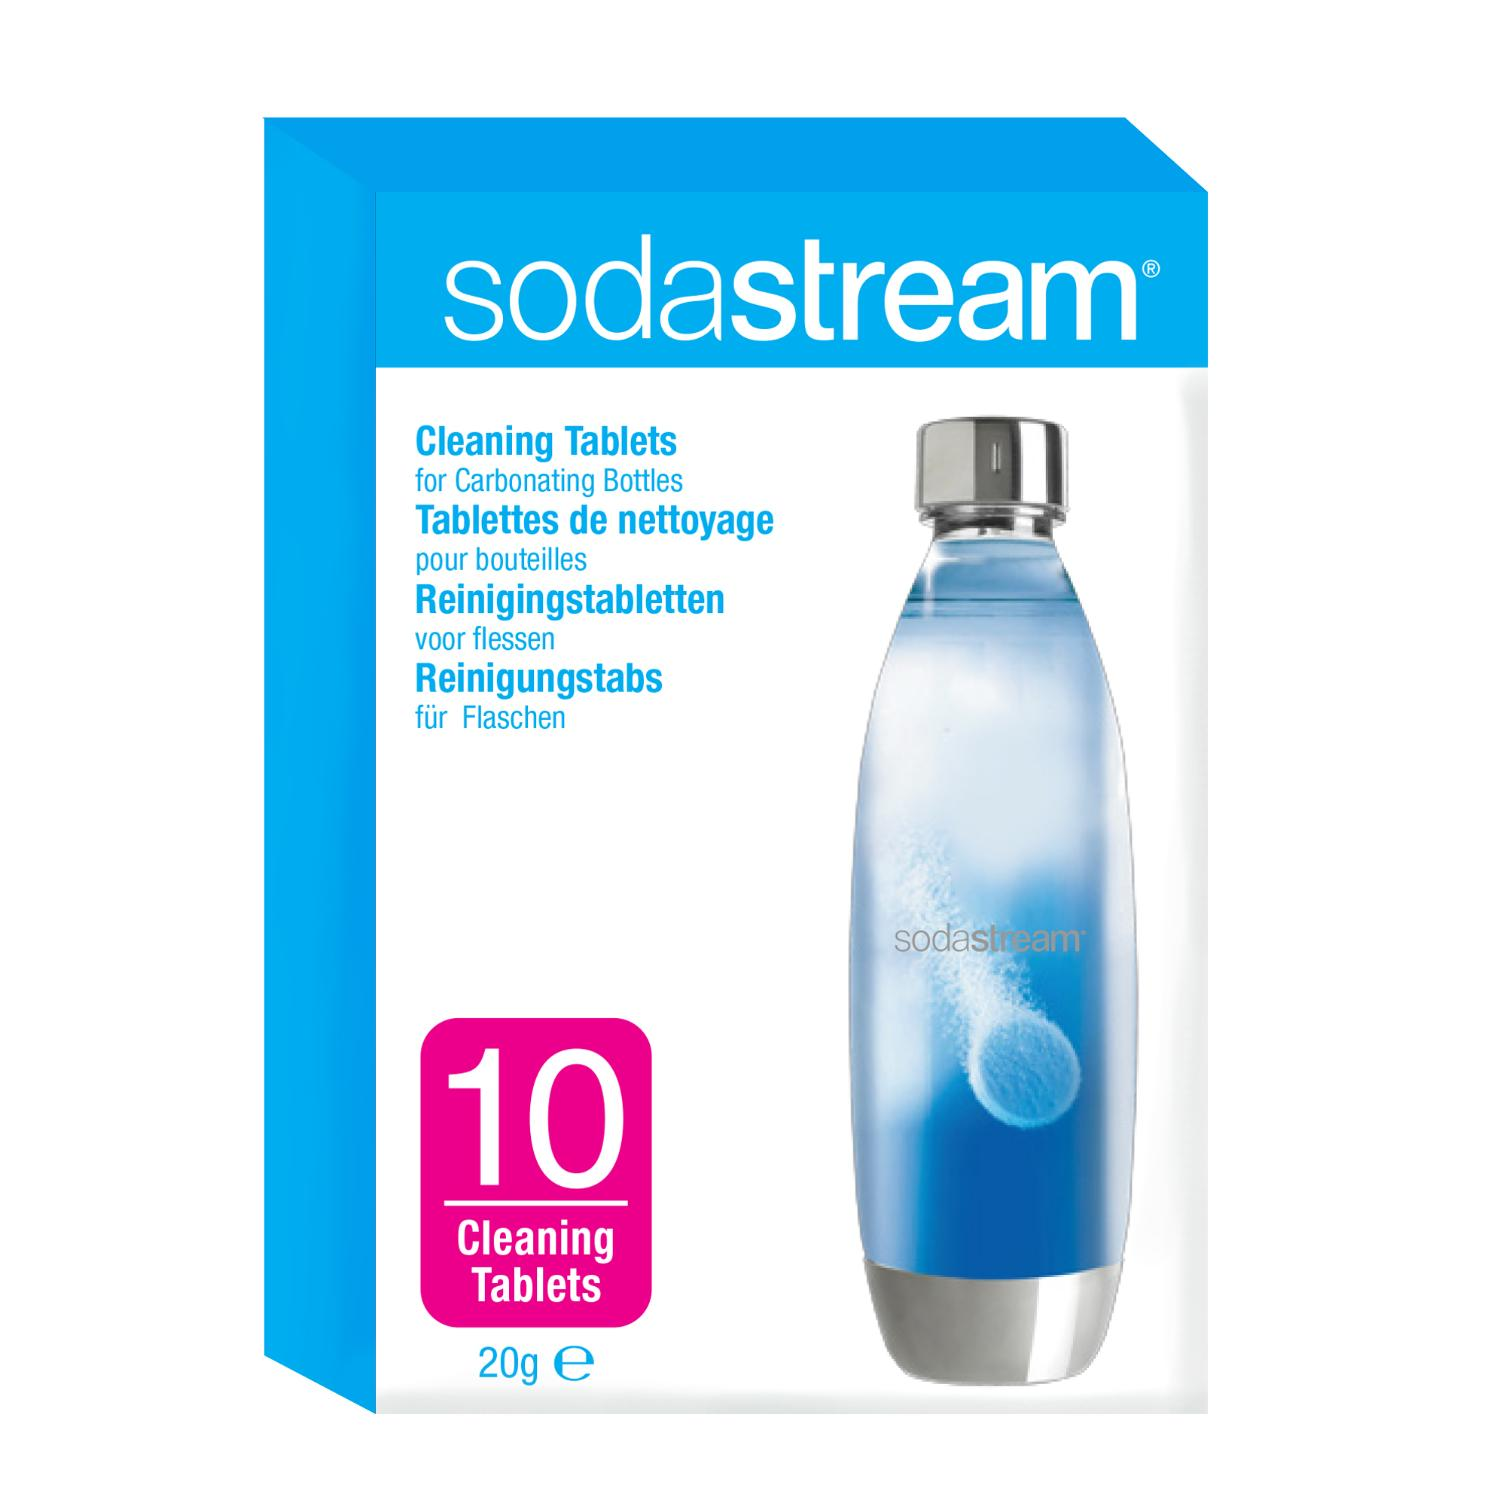 SodaStream - Reinigingstabletten - Cleaning Tablets